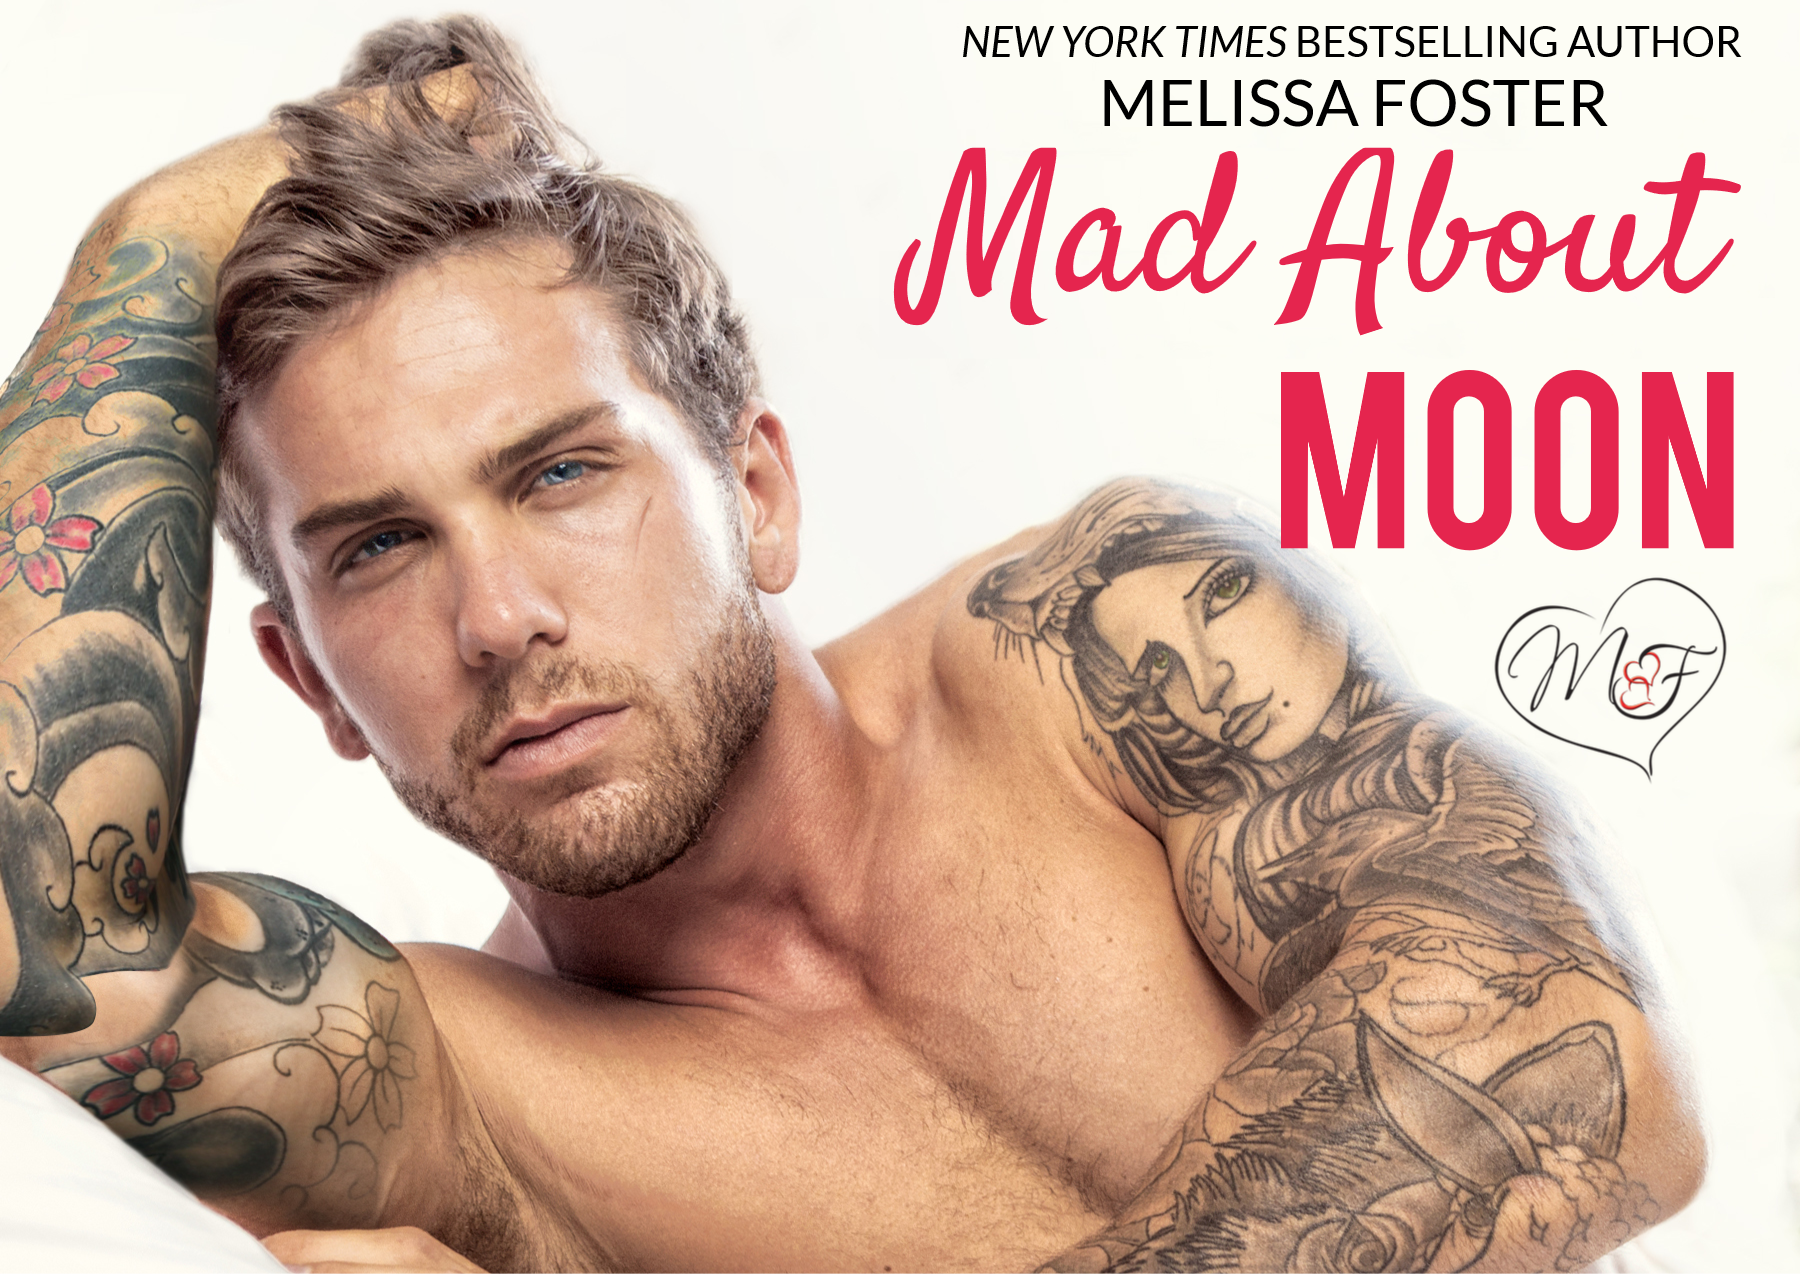 Mad About Moon by Melissa Foster Review